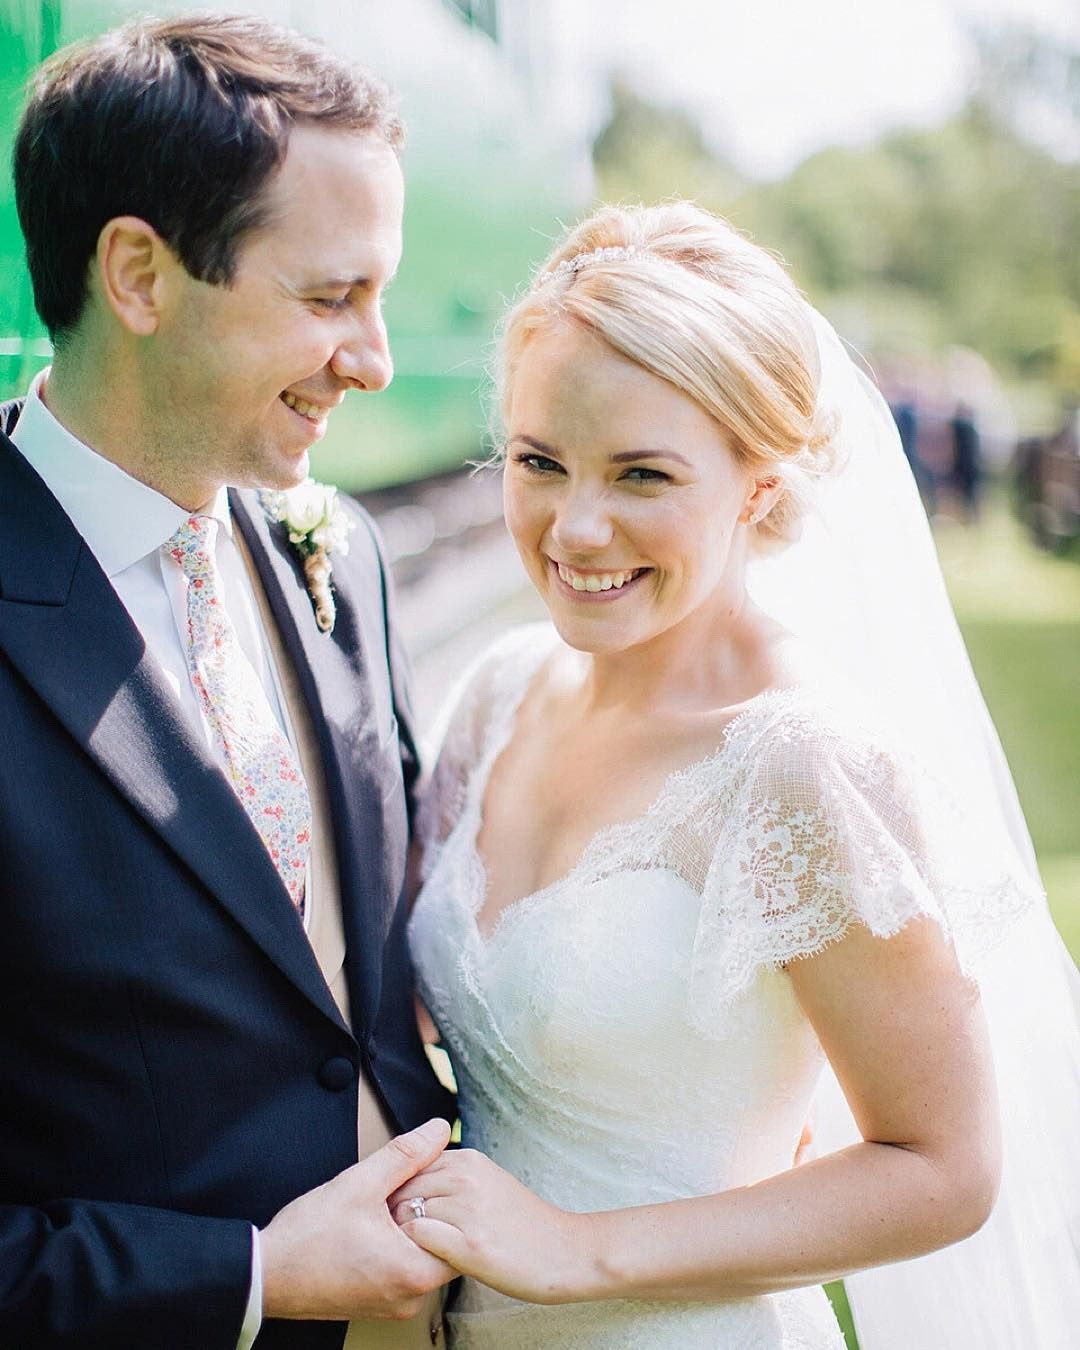 Real Weddings Blog: REAL WEDDINGS // The Most Elegant And Fun Day Just Hit The